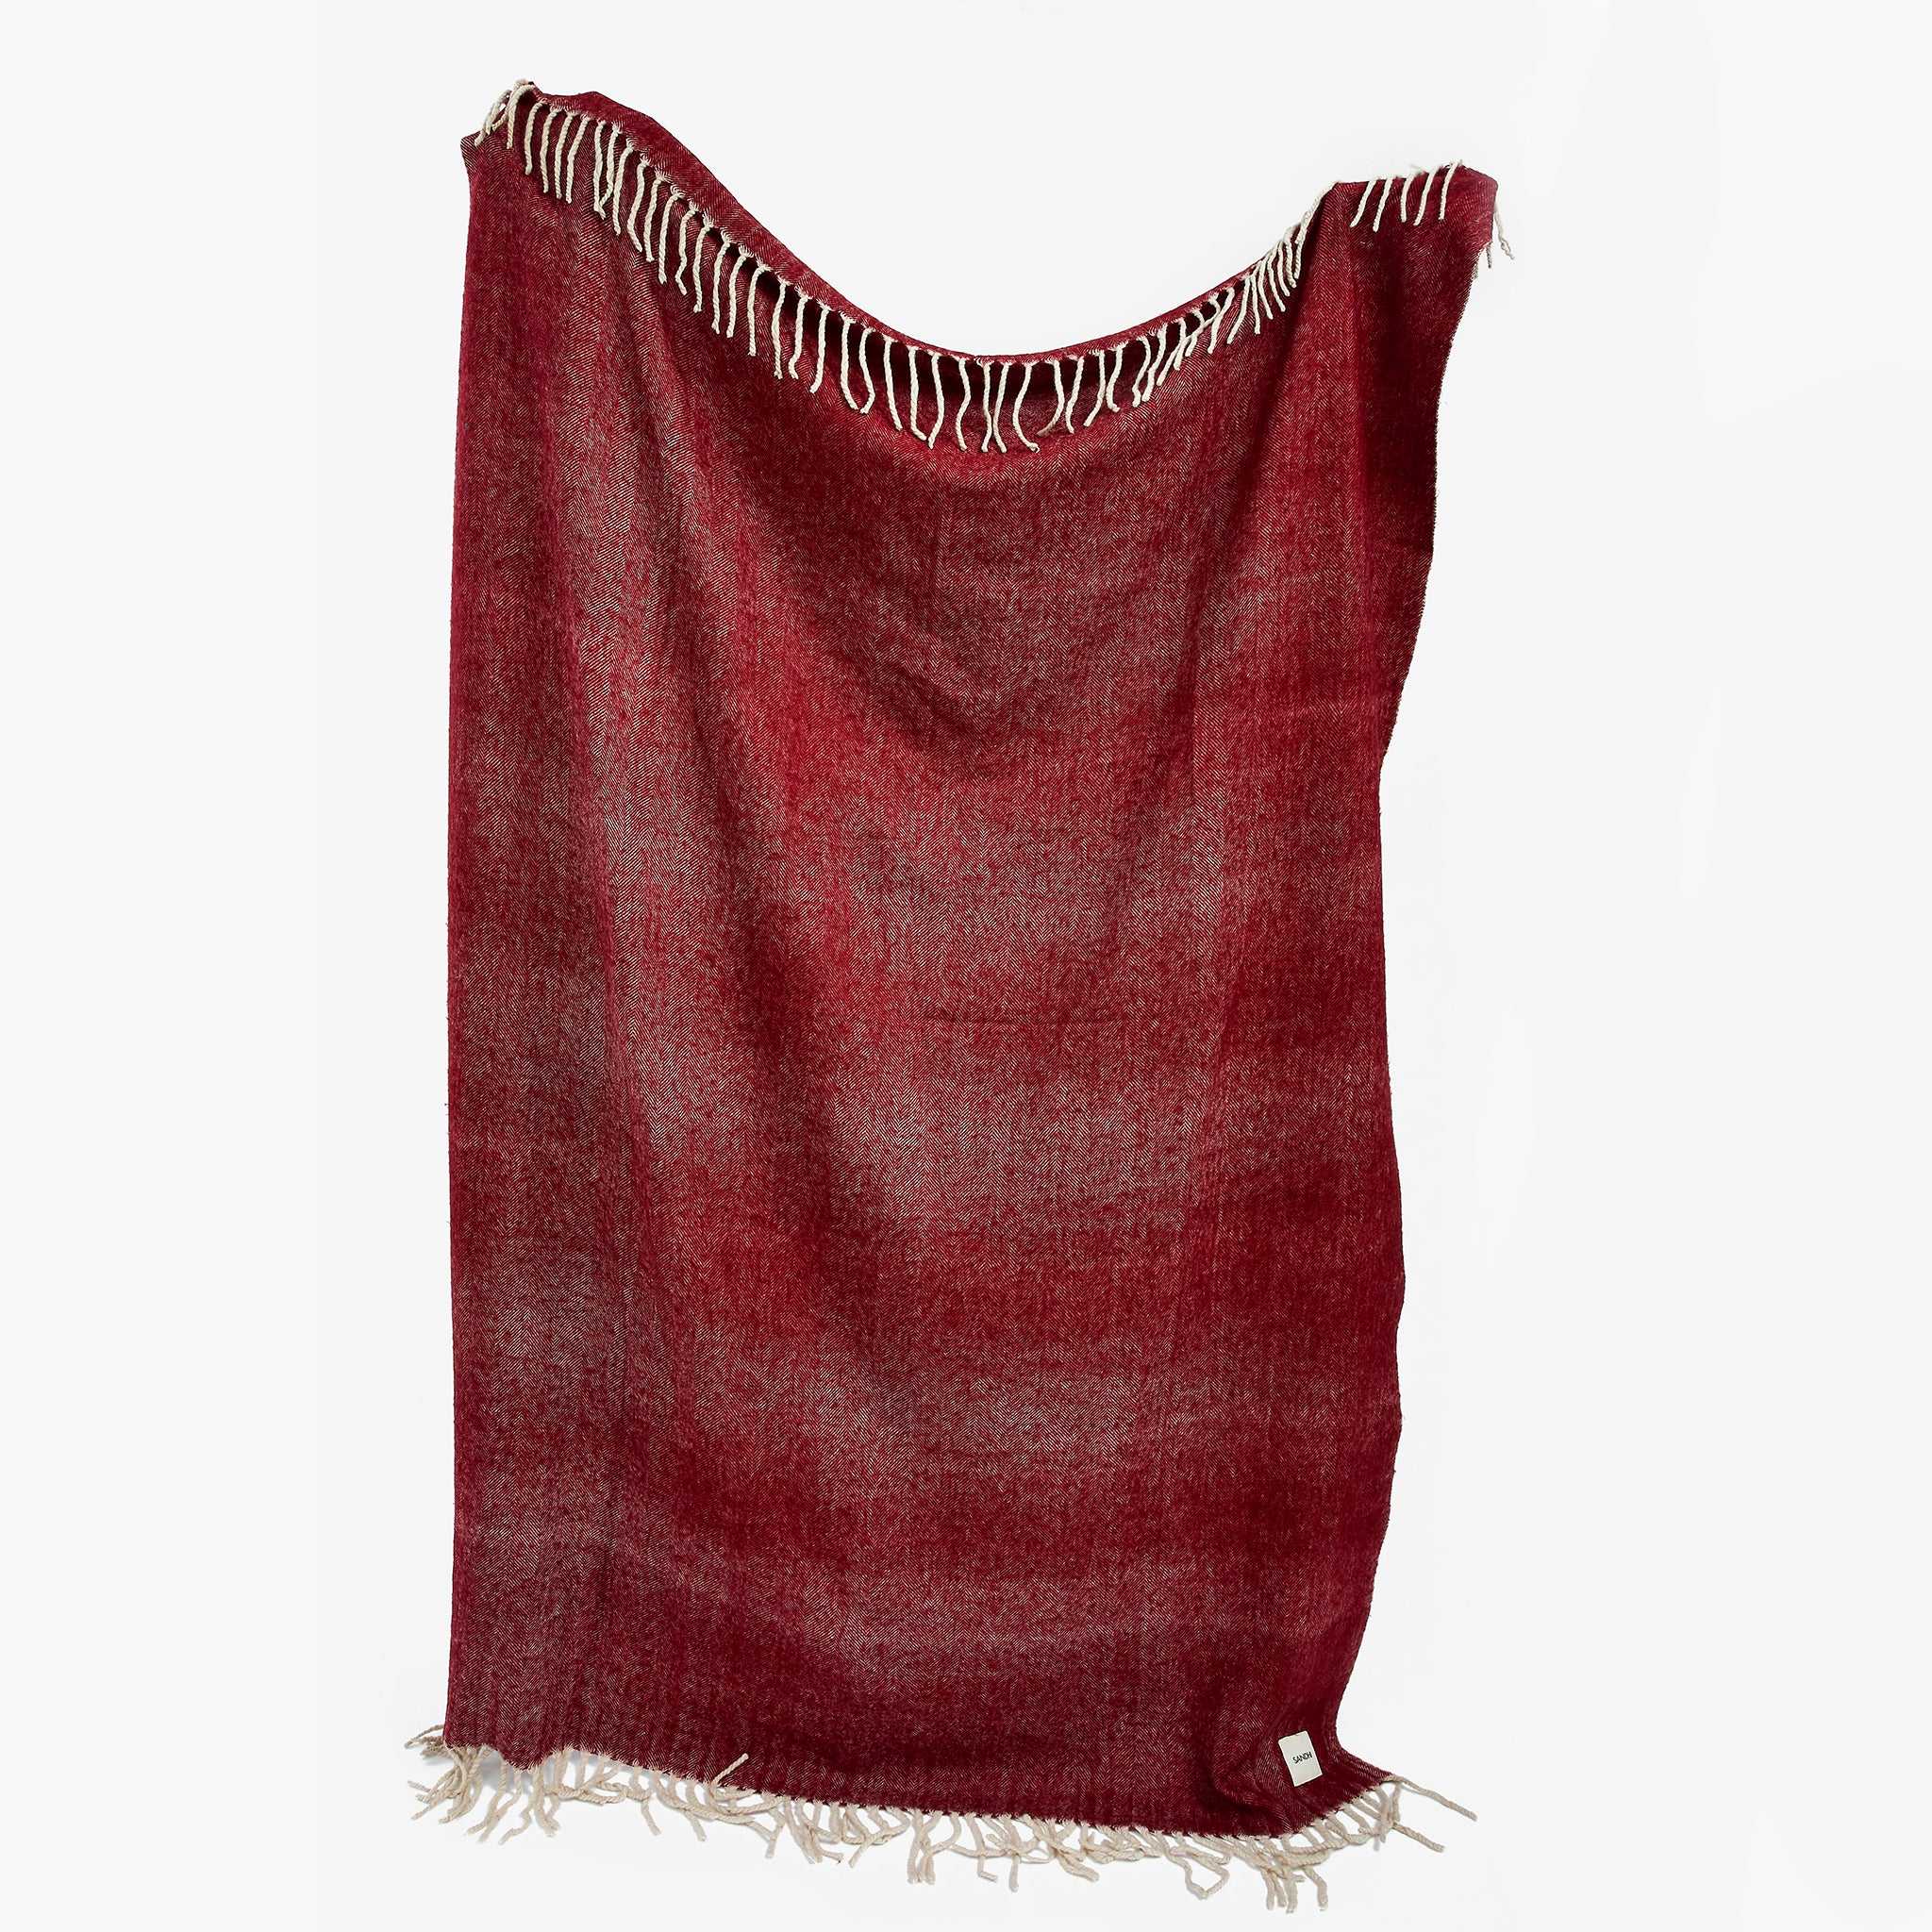 Herringbone Red Blanket For Christmas Gift | Sandhi